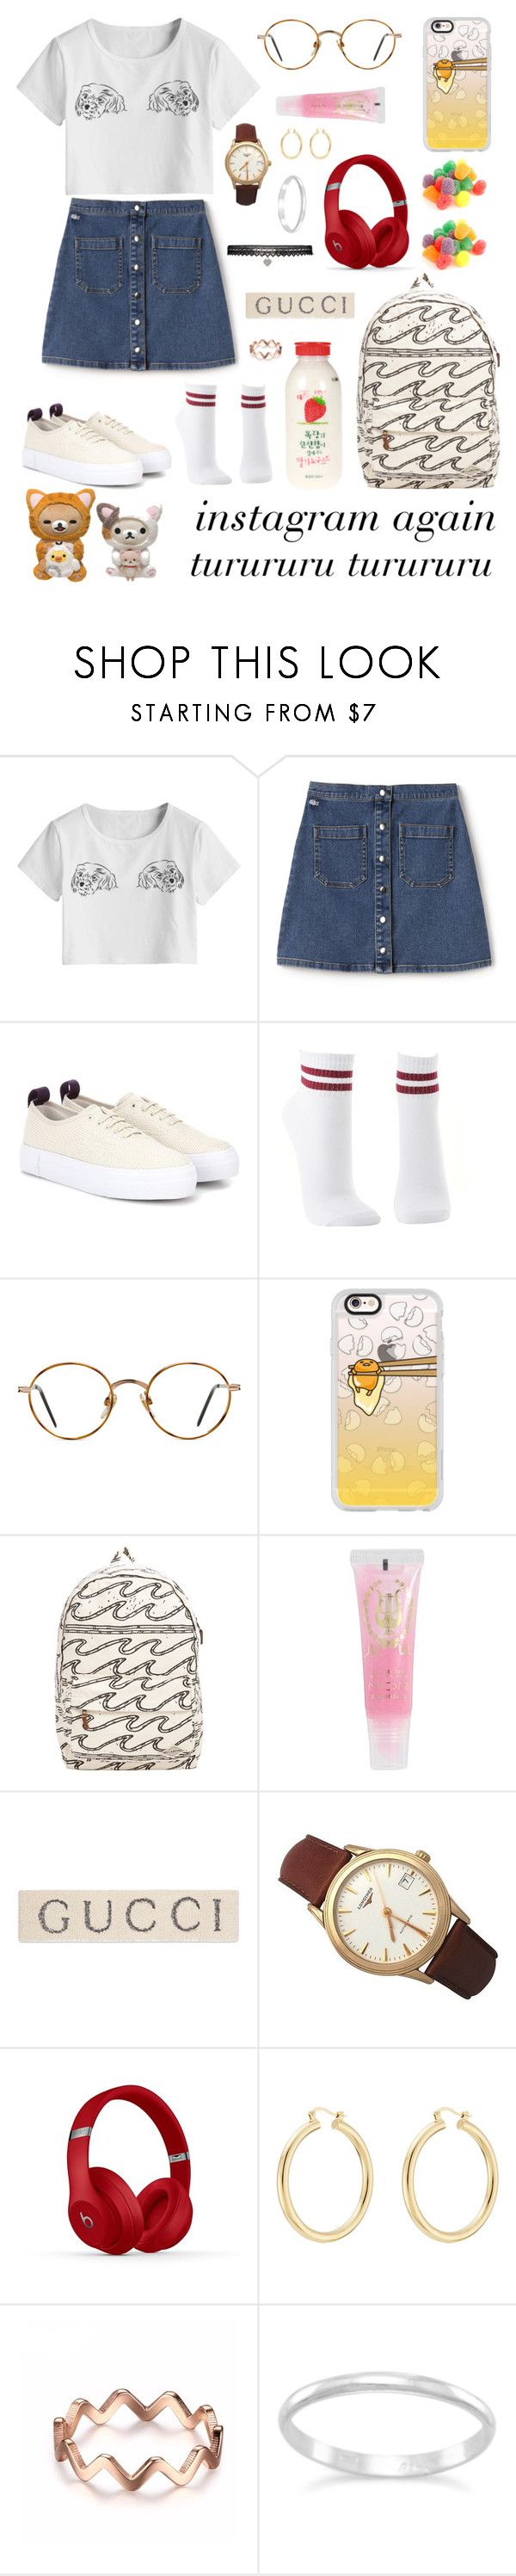 """""""All night 그렇게 시간 낭비를 하네 니 Instagram 속에서"""" by nasiaberb ❤ liked on Polyvore featuring Lacoste L!VE, Eytys, Charlotte Russe, GlassesUSA, Casetify, Billabong, MOR Cosmetics, Gucci, Longines and Isabel Marant"""